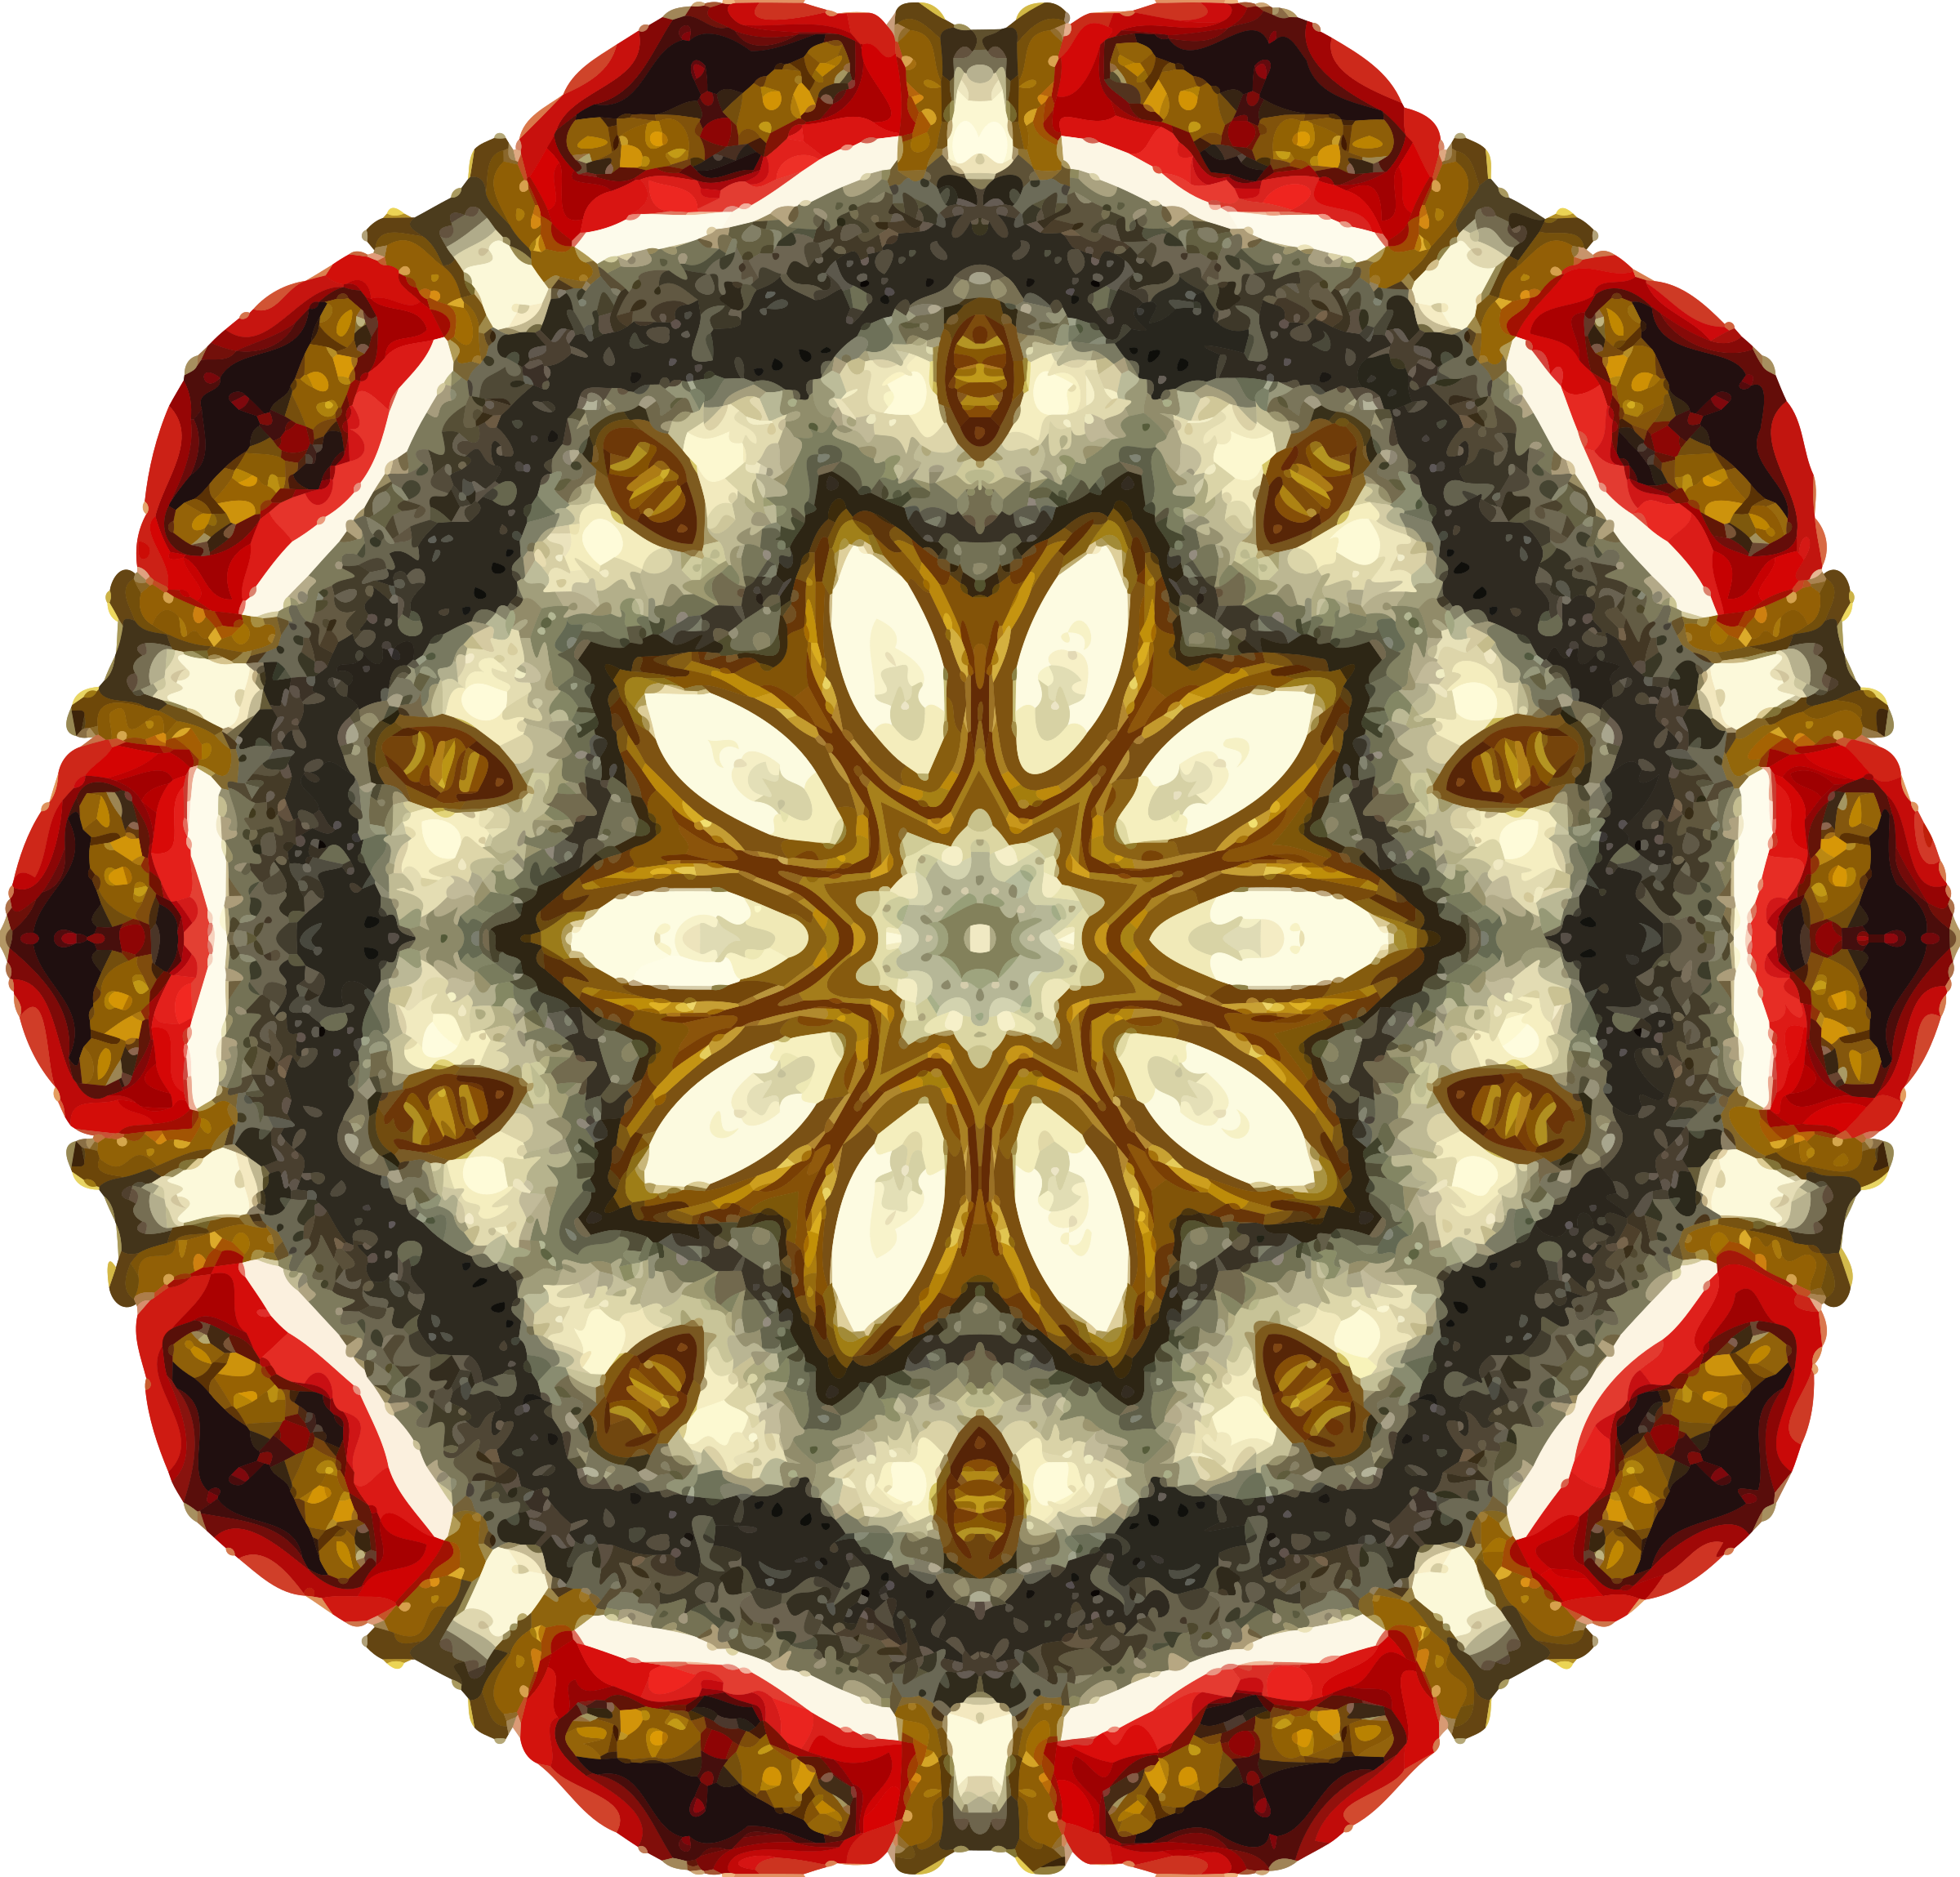 Mandala 11 by Firkin